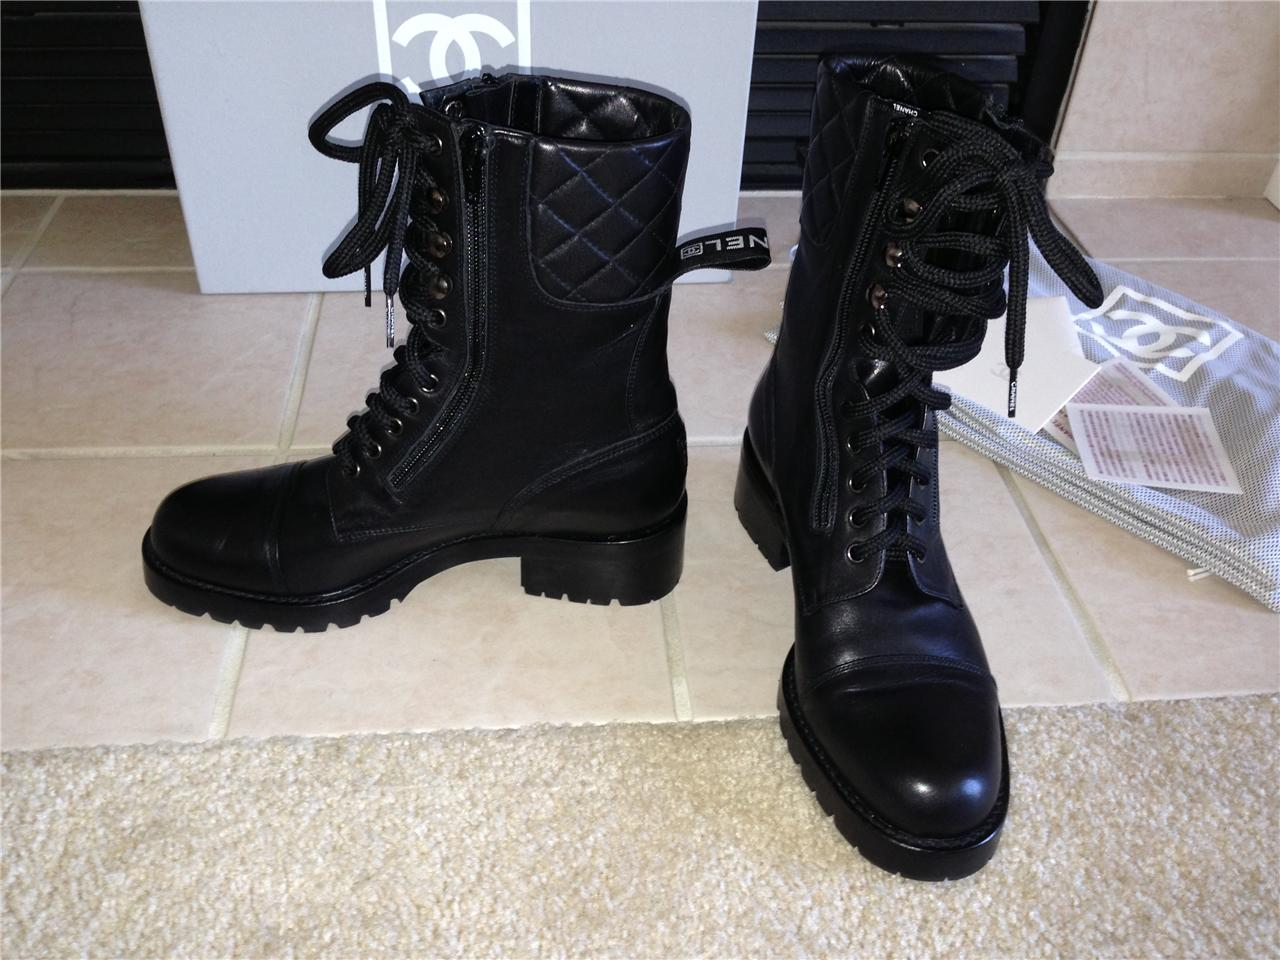 Chanel Quilted Black Motorcycle Combat Leather Boots 8 39 Ebay